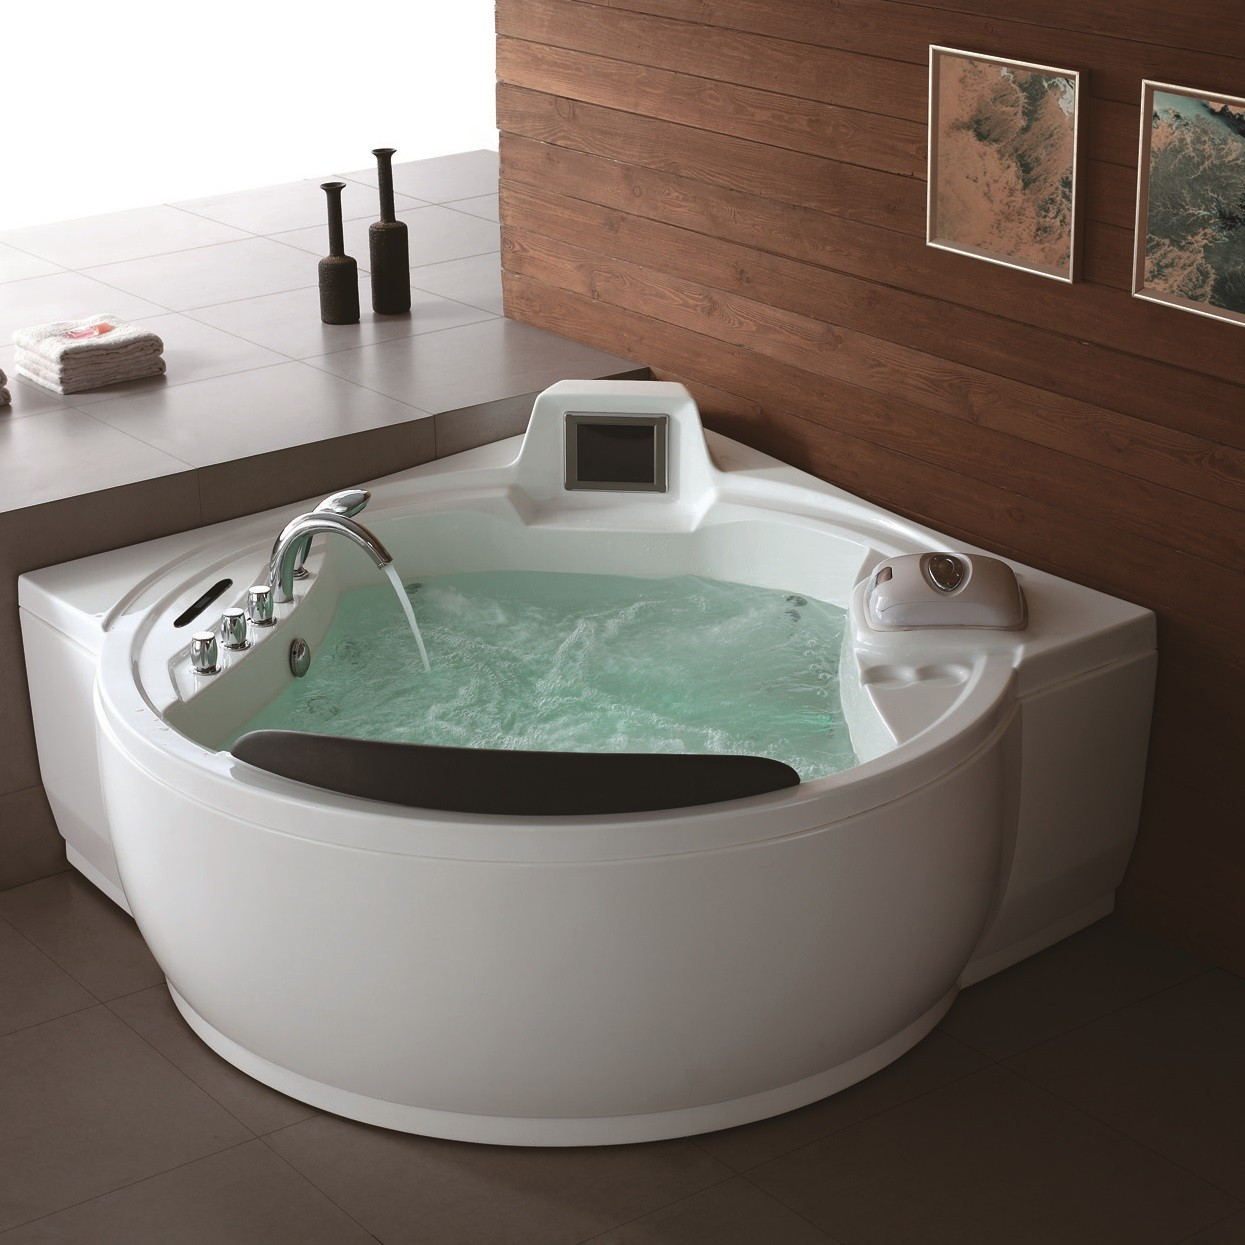 freeport whirlpool tub. Black Bedroom Furniture Sets. Home Design Ideas